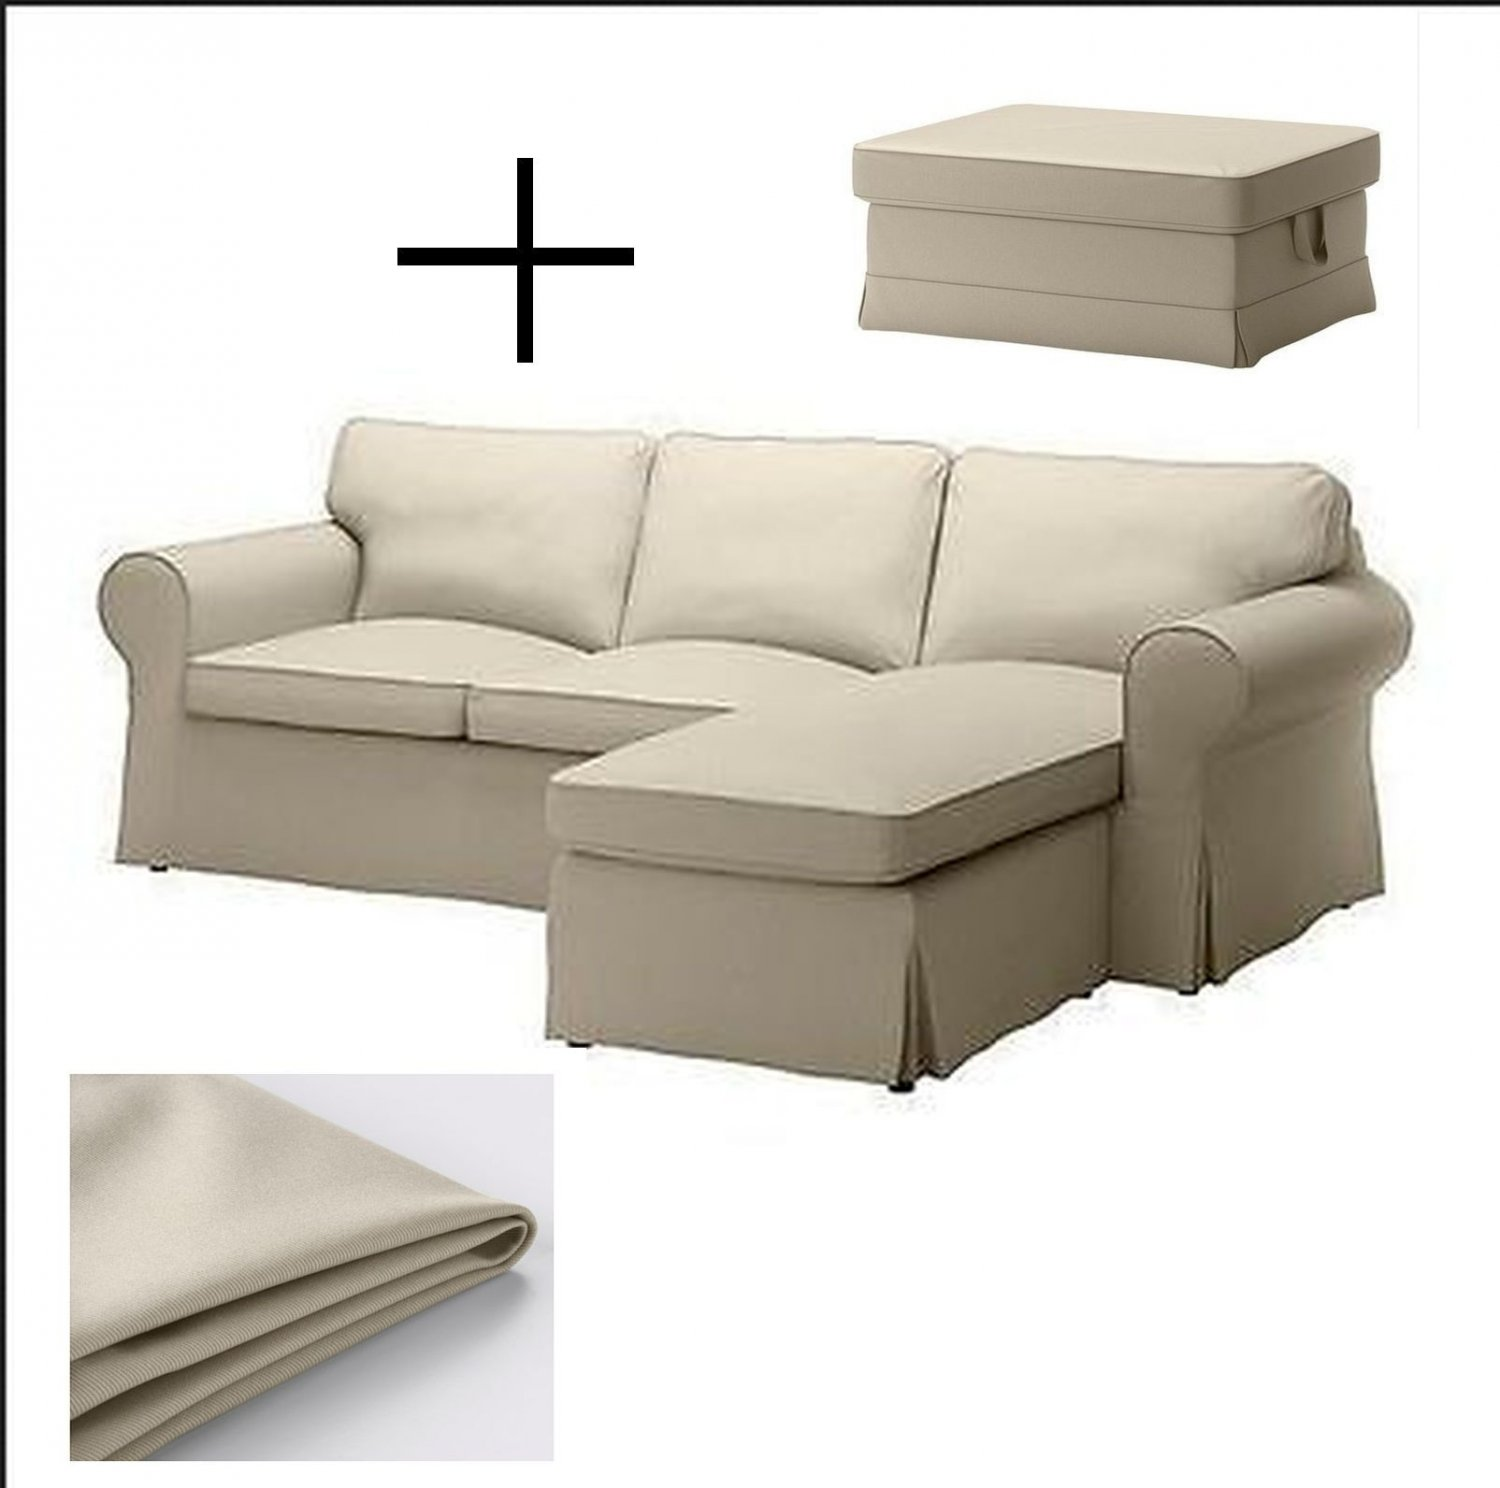 ikea ektorp loveseat sofa w chaise and footstool ottoman covers slipcovers tygelsjo beige tygelsj. Black Bedroom Furniture Sets. Home Design Ideas